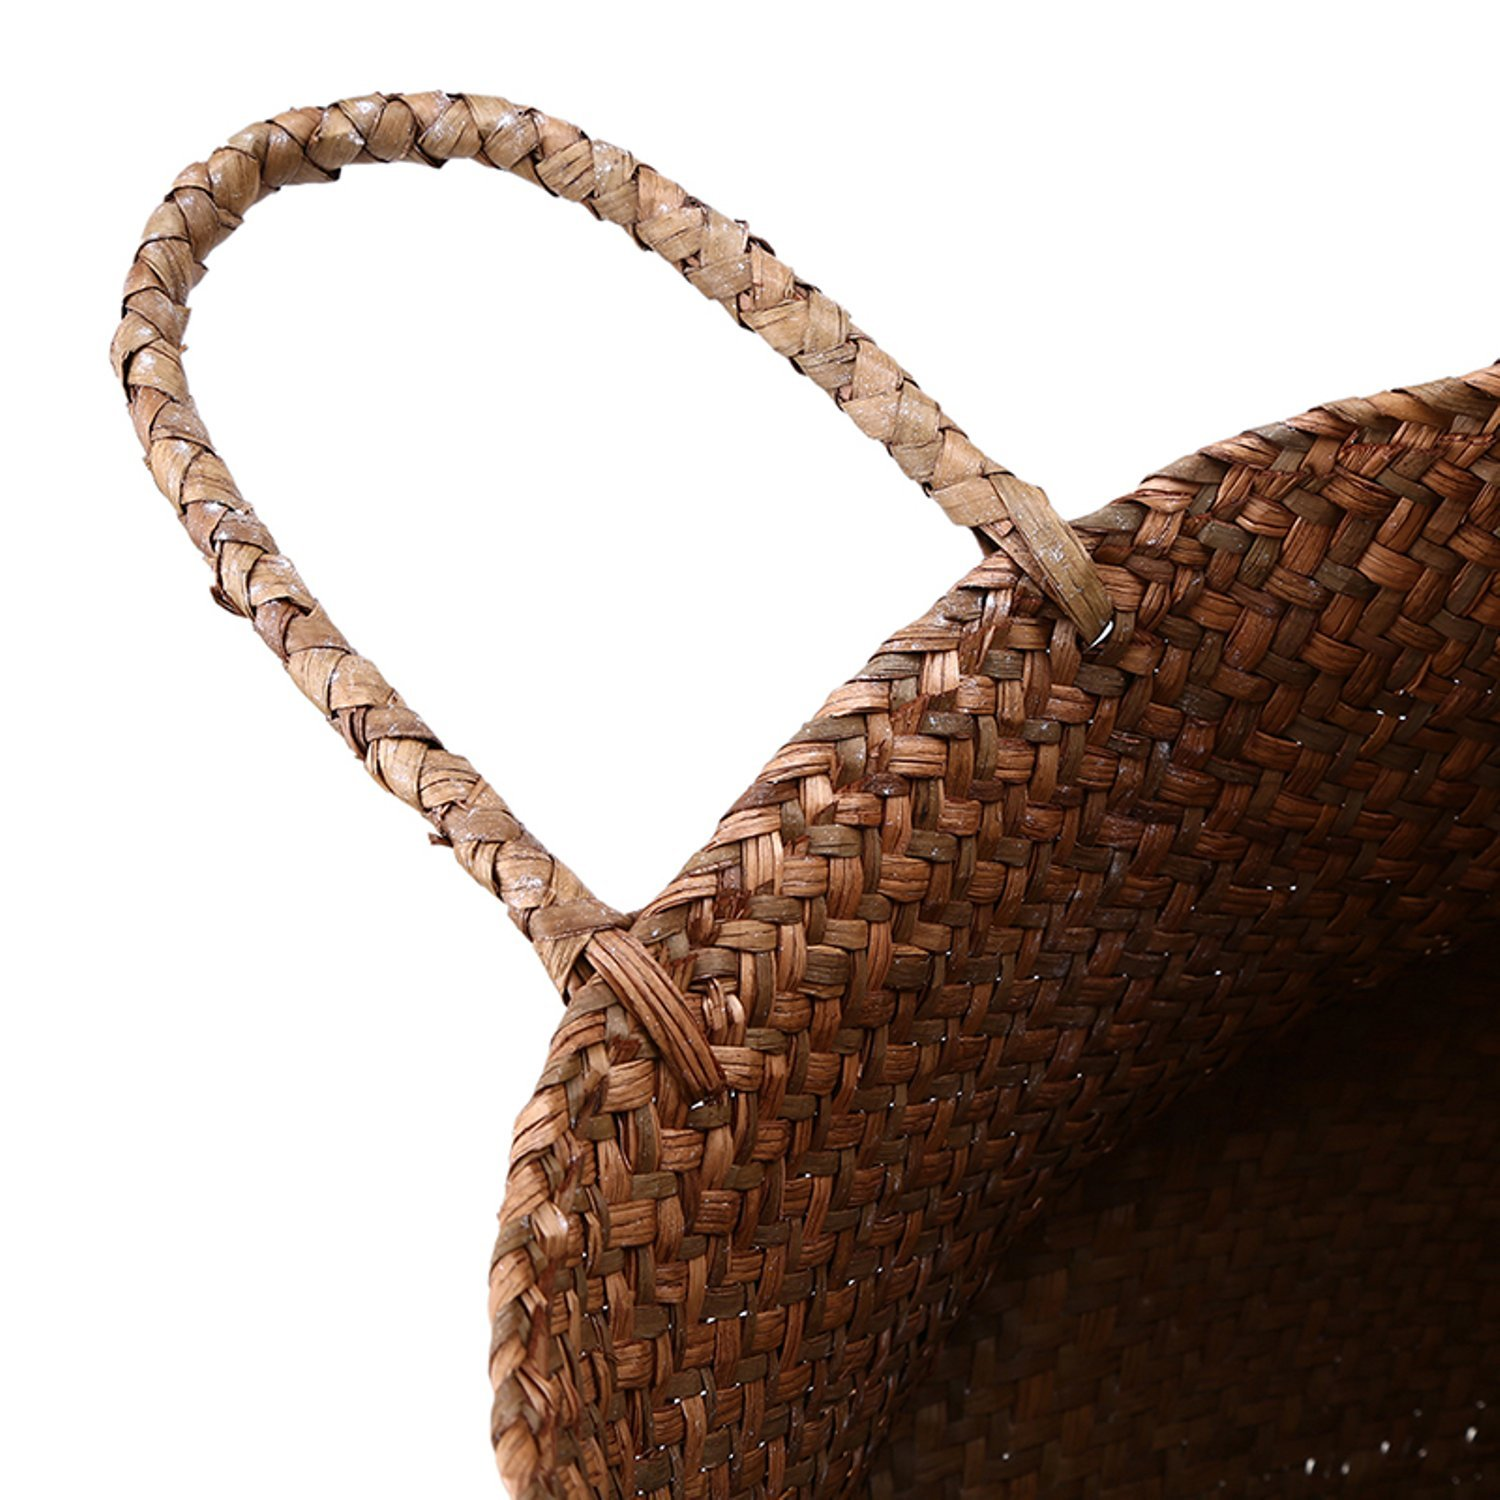 Woven Wicker Seagrass Plant Stand Flower Pot Care Storage Basket Woven Lightweight Foldable Collapsible Garden Yard Laundry Supplies Basket Patio Organizer Decoration (Nature-White)